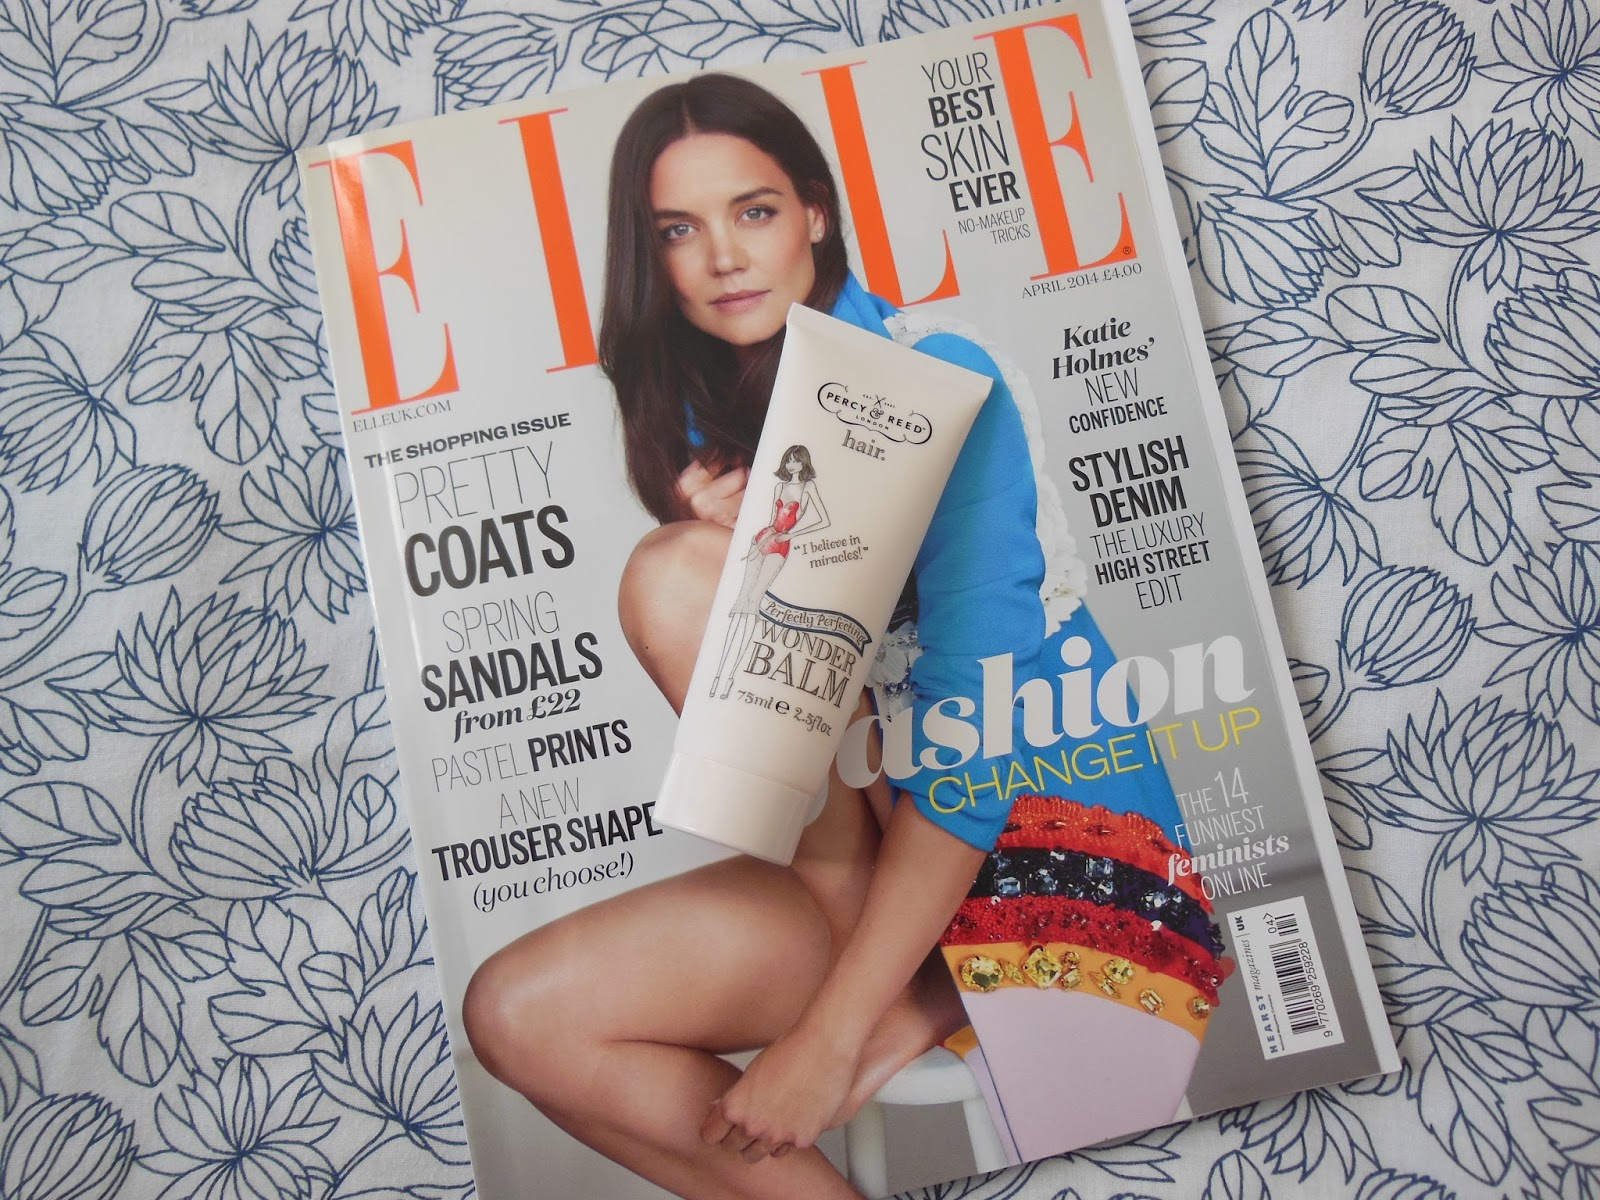 Elle Magazine and Percy and Reed Wonder Balm free gift